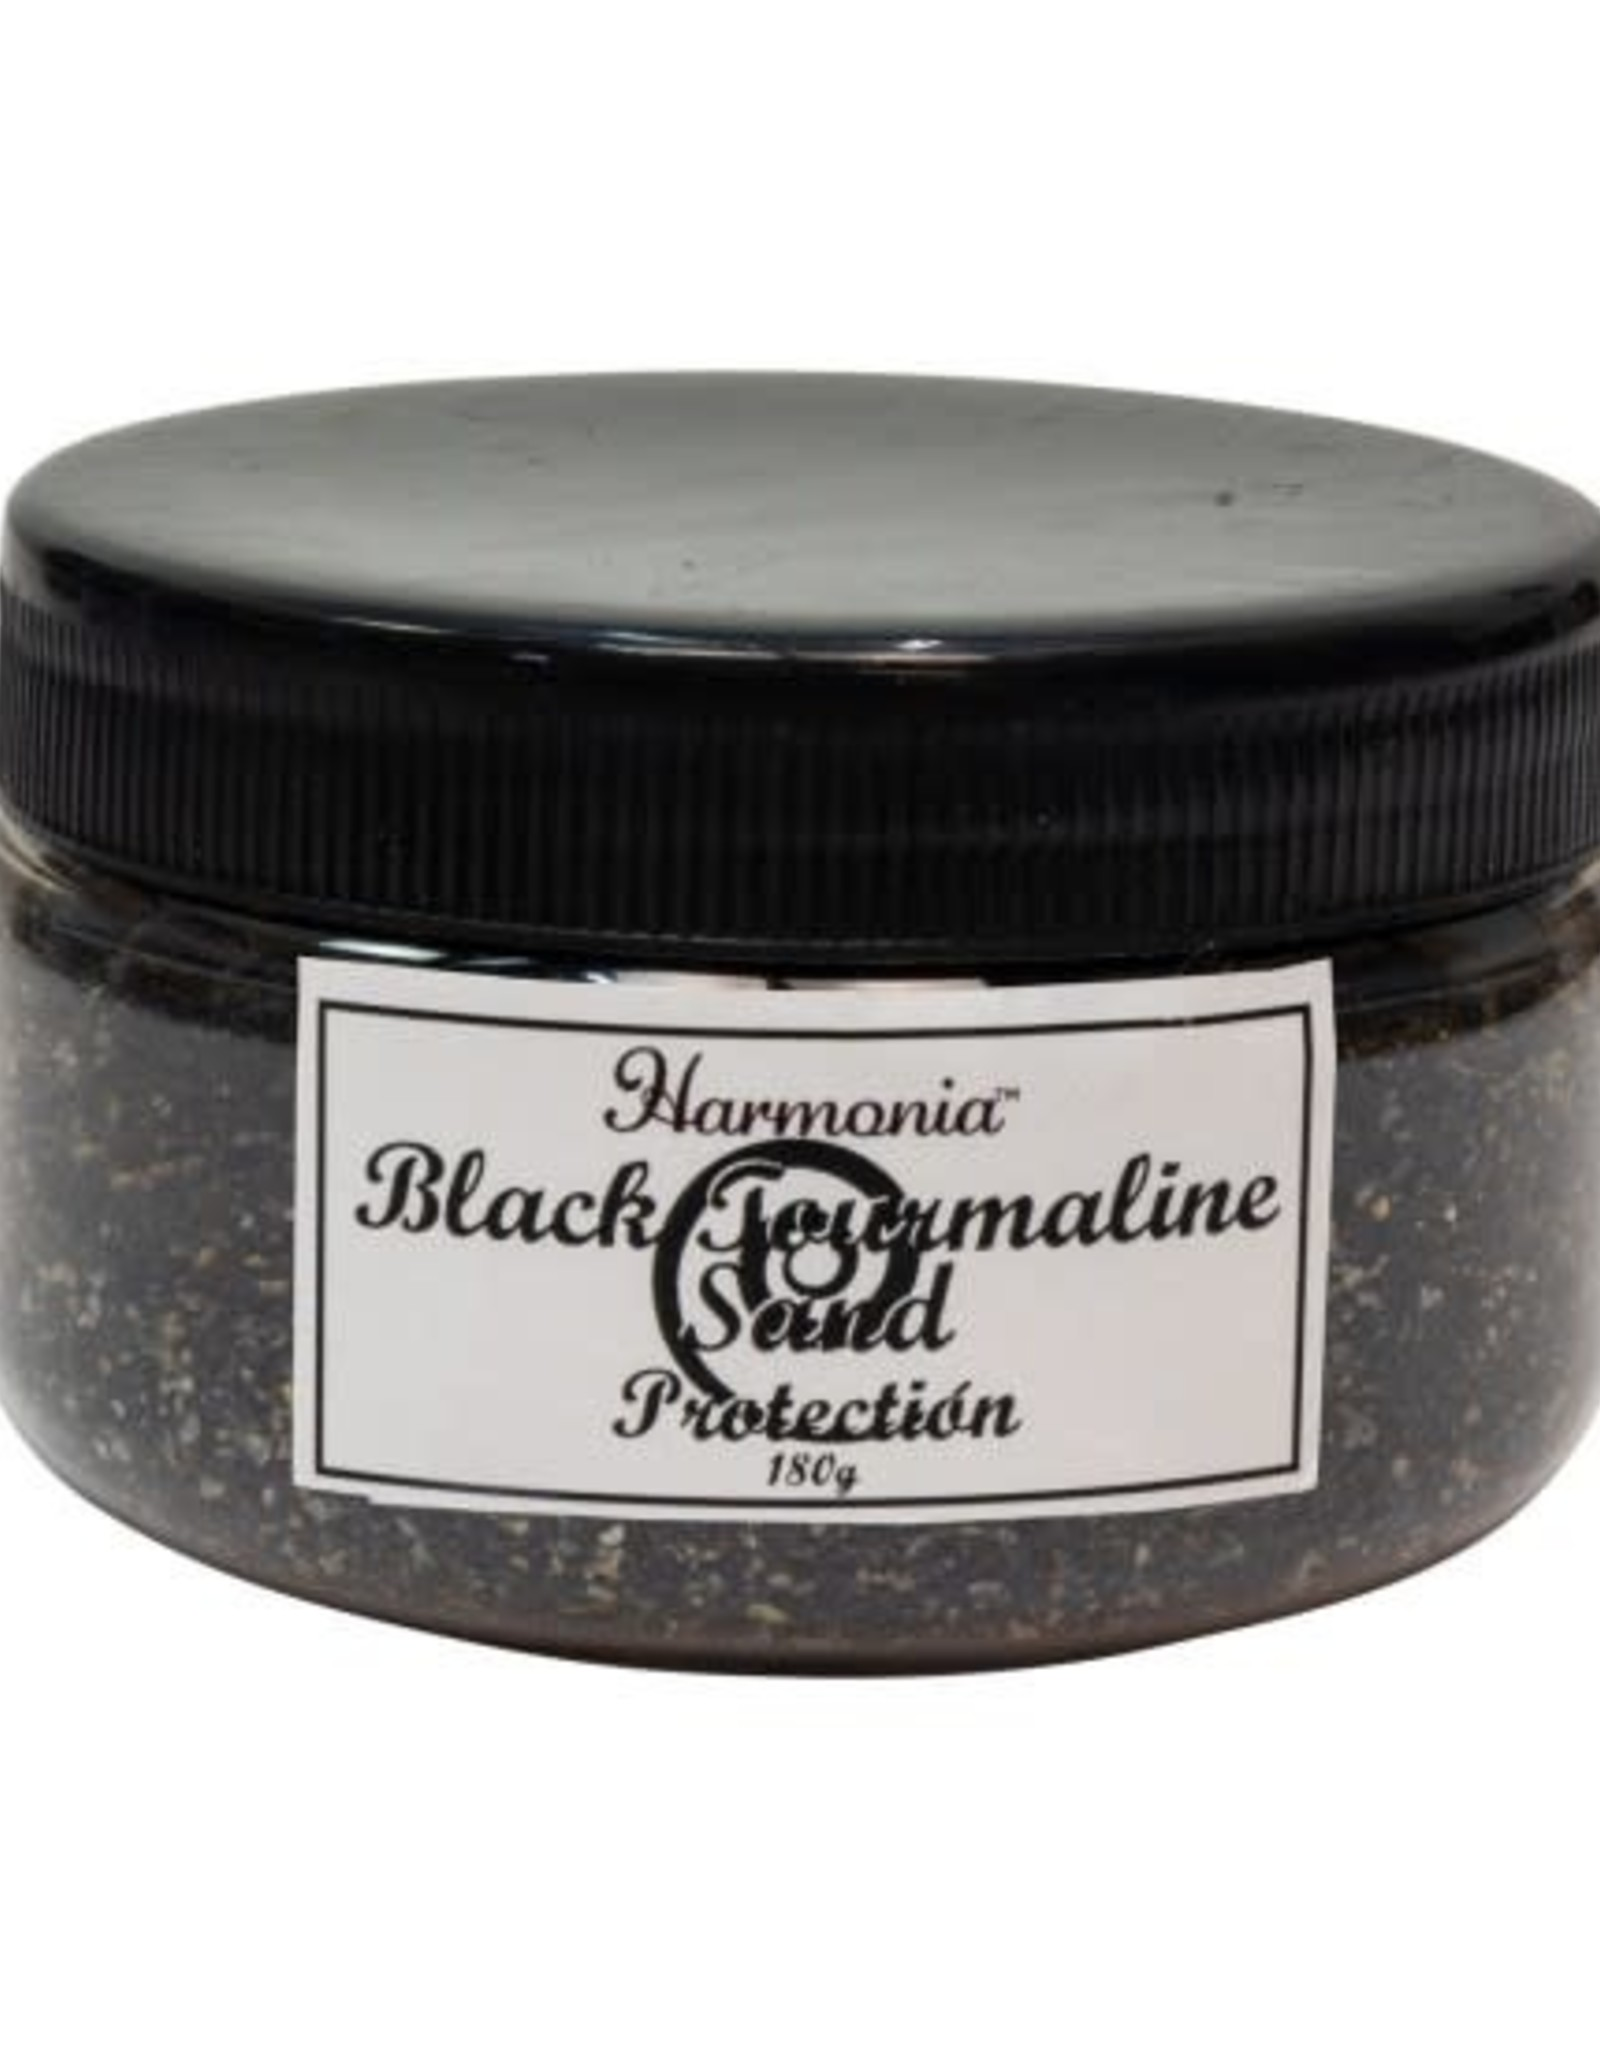 Black Tourmaline Crystal Sand- Protection